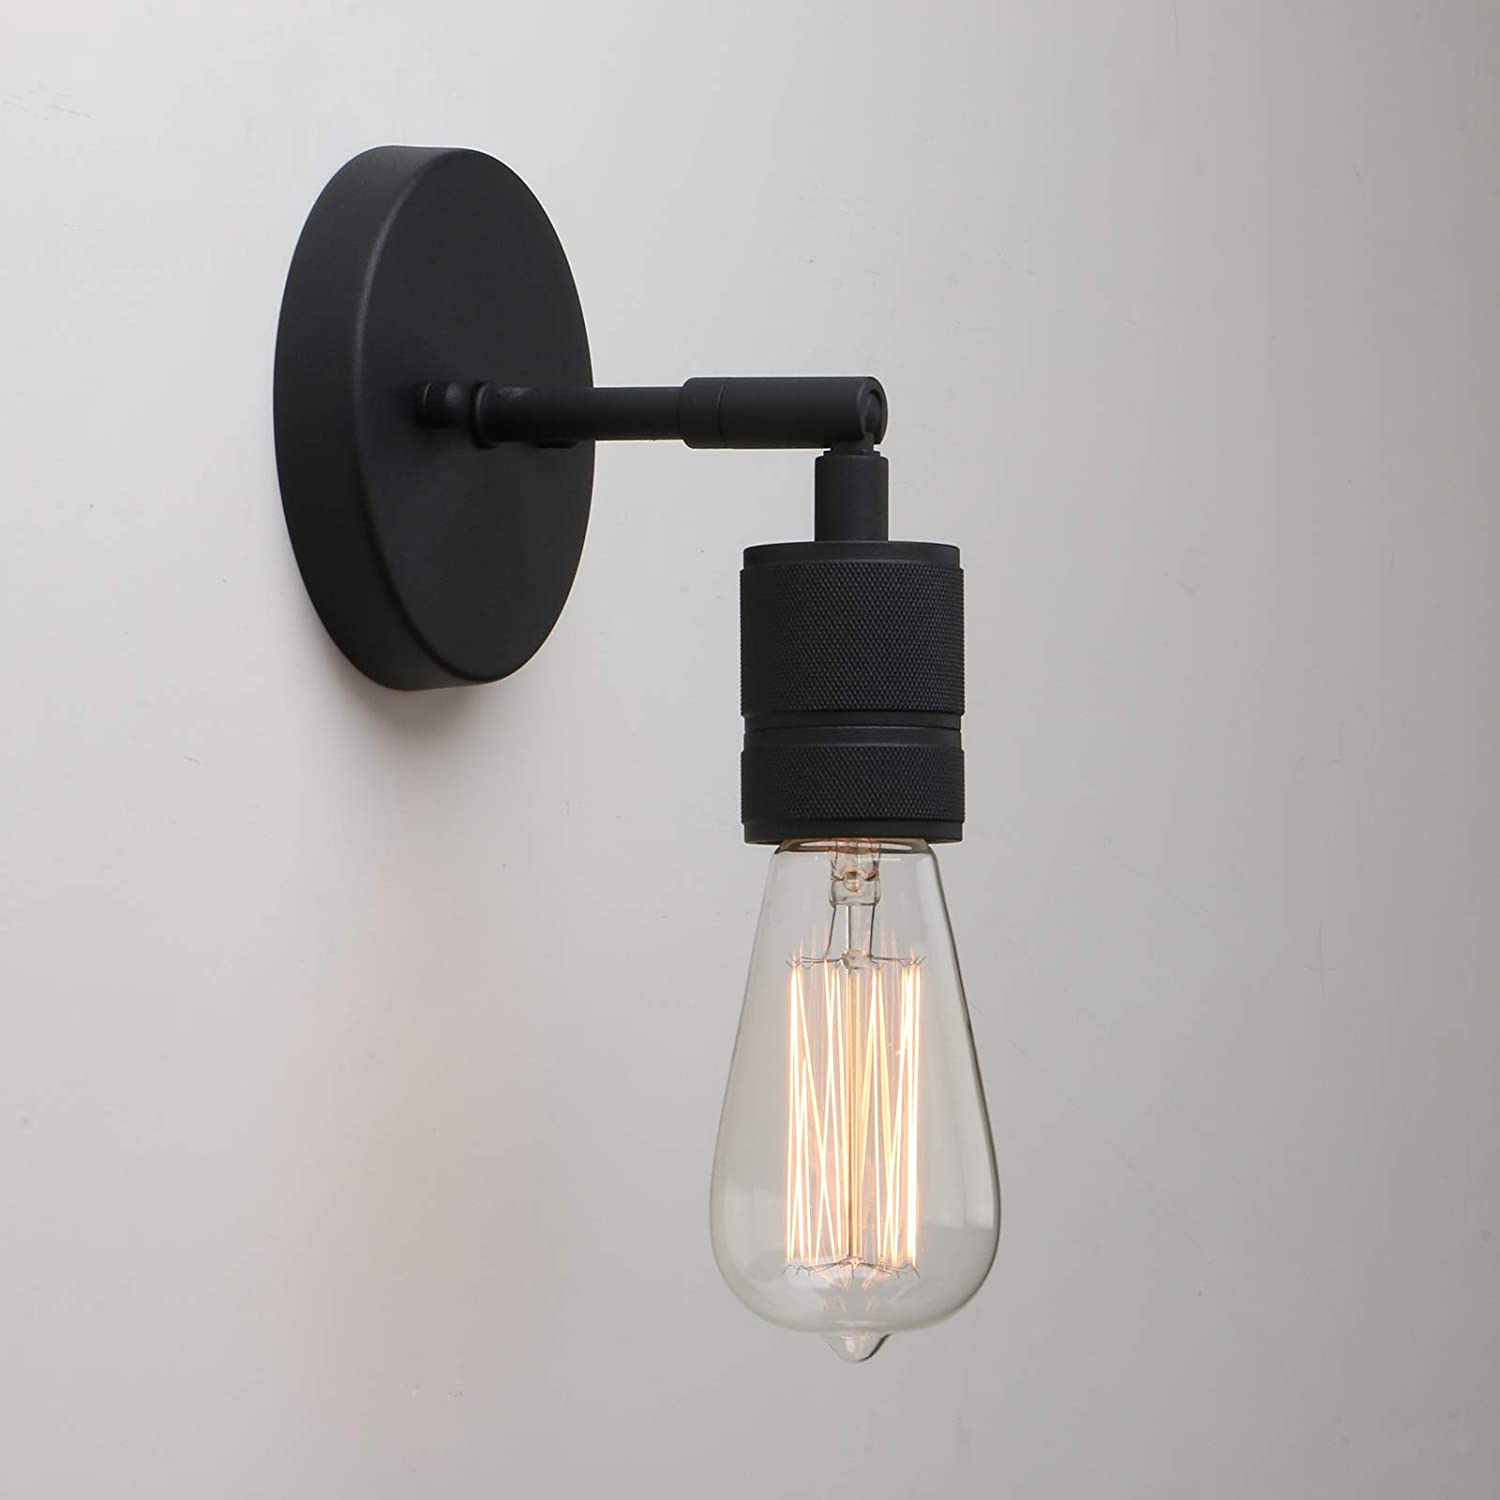 Yosoan Lighting Vintage Up Down Wall Light Industrial Antique Wall Lamp Fitting Fixtures Wall Sconce Edison Lamp For Kitchen Hall Dining Room Bedroom Bar Restaurants Coffee Shop Black Amazon Co Uk Lighting